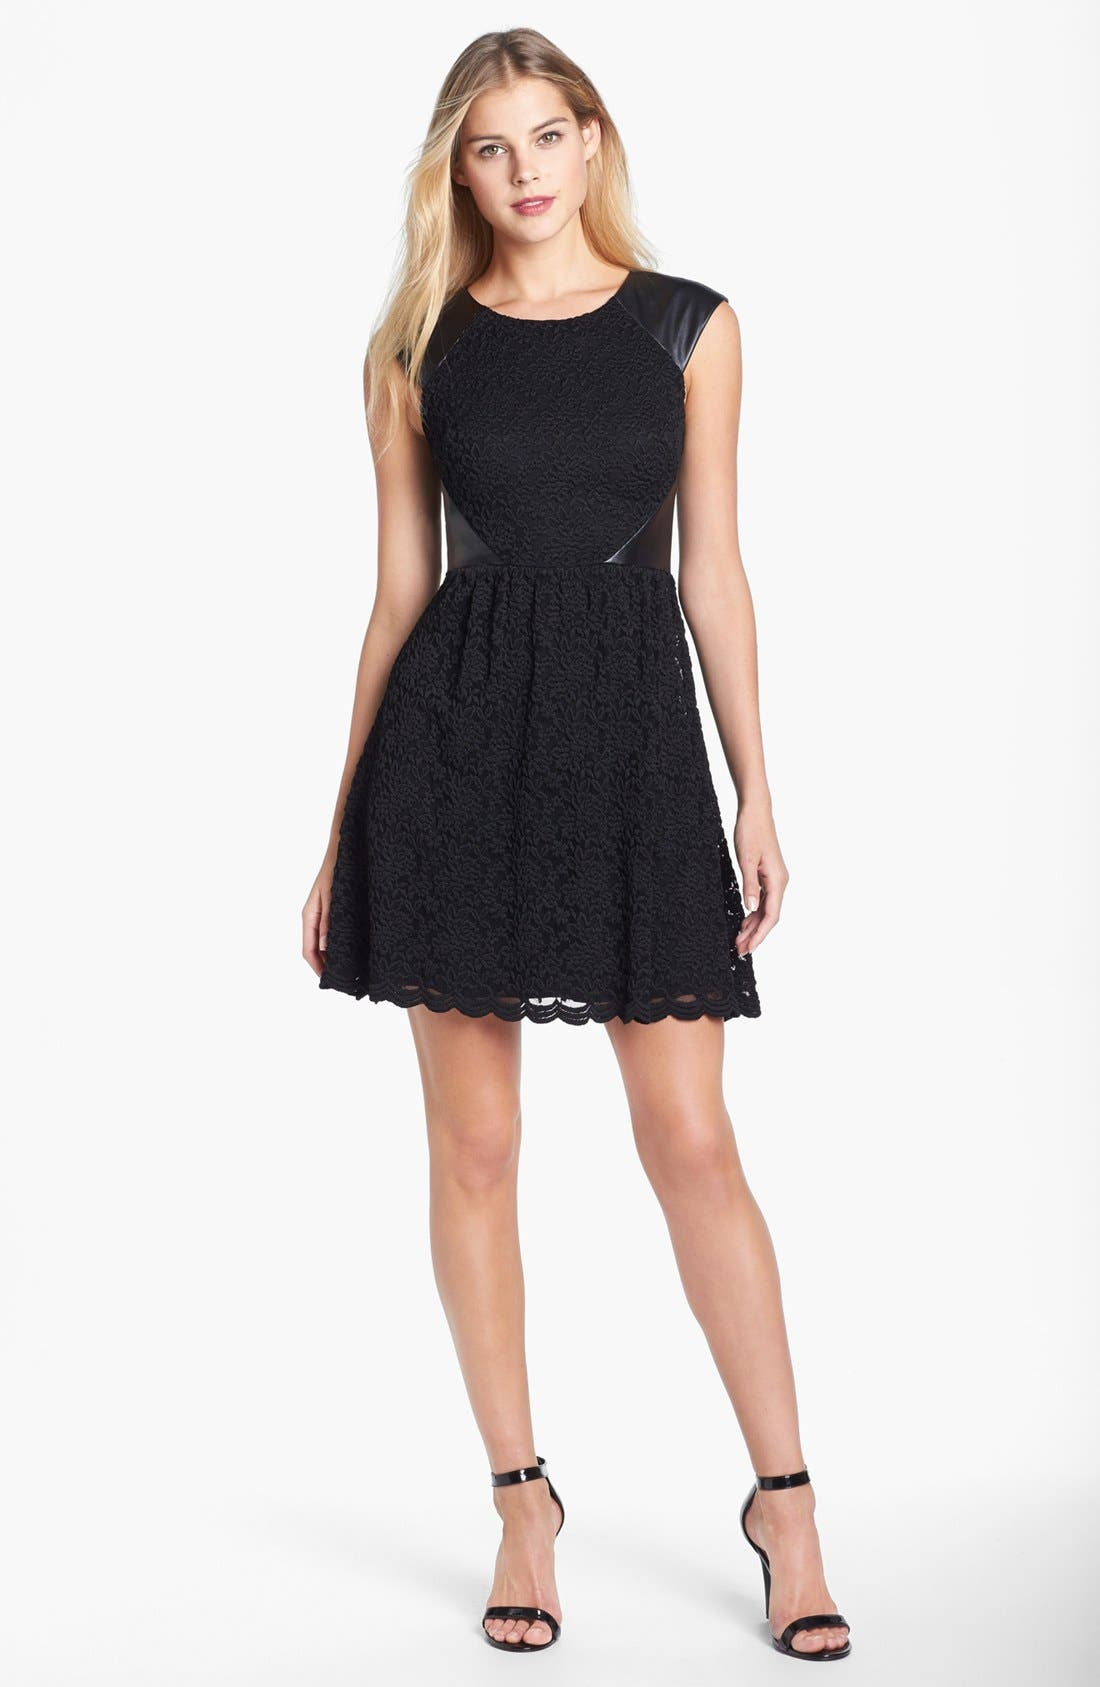 Main Image - Betsey Johnson Faux Leather Trim Lace Fit & Flare Dress